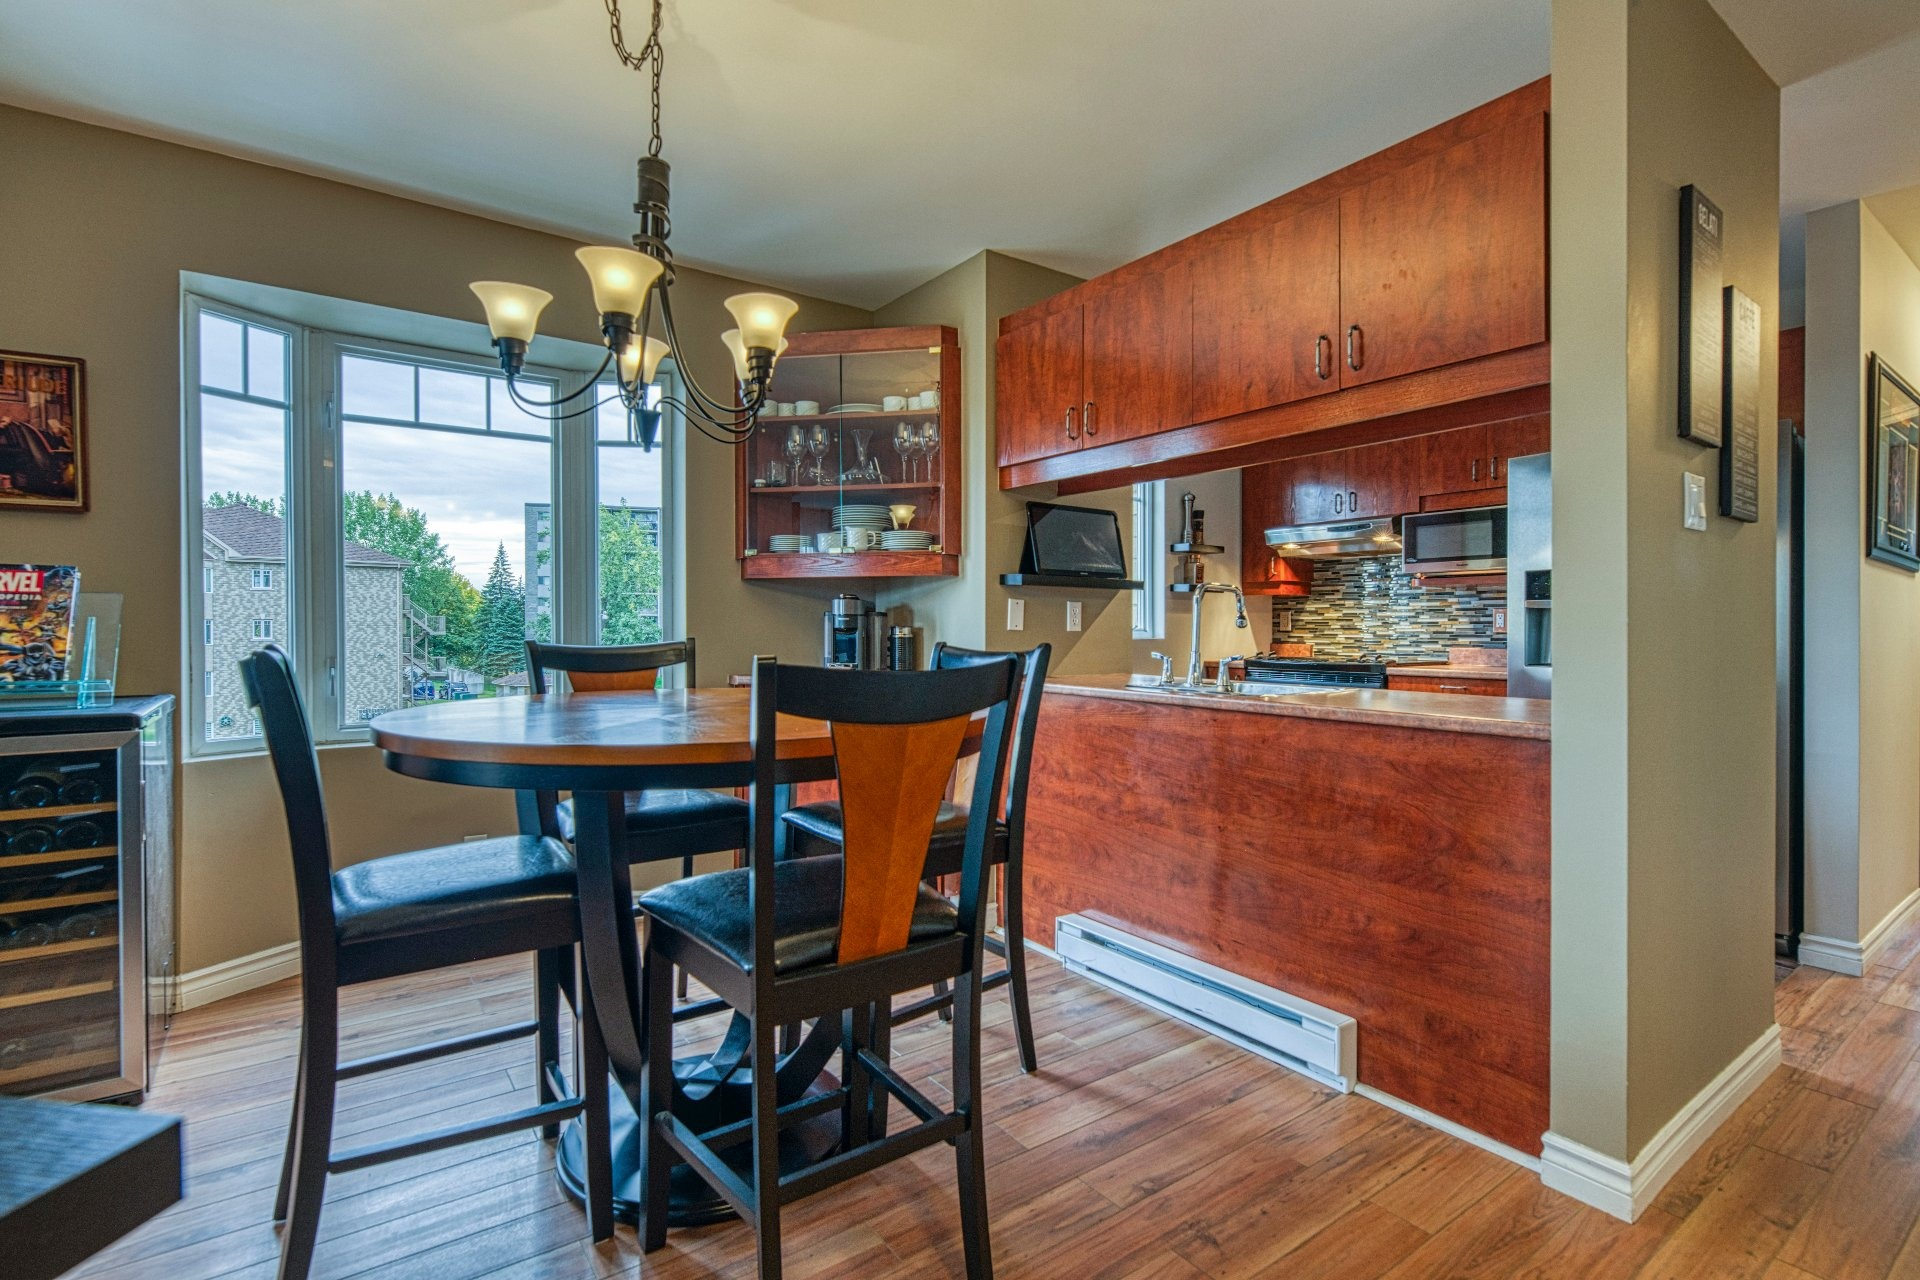 image 10 - Apartment For sale Chomedey Laval  - 5 rooms